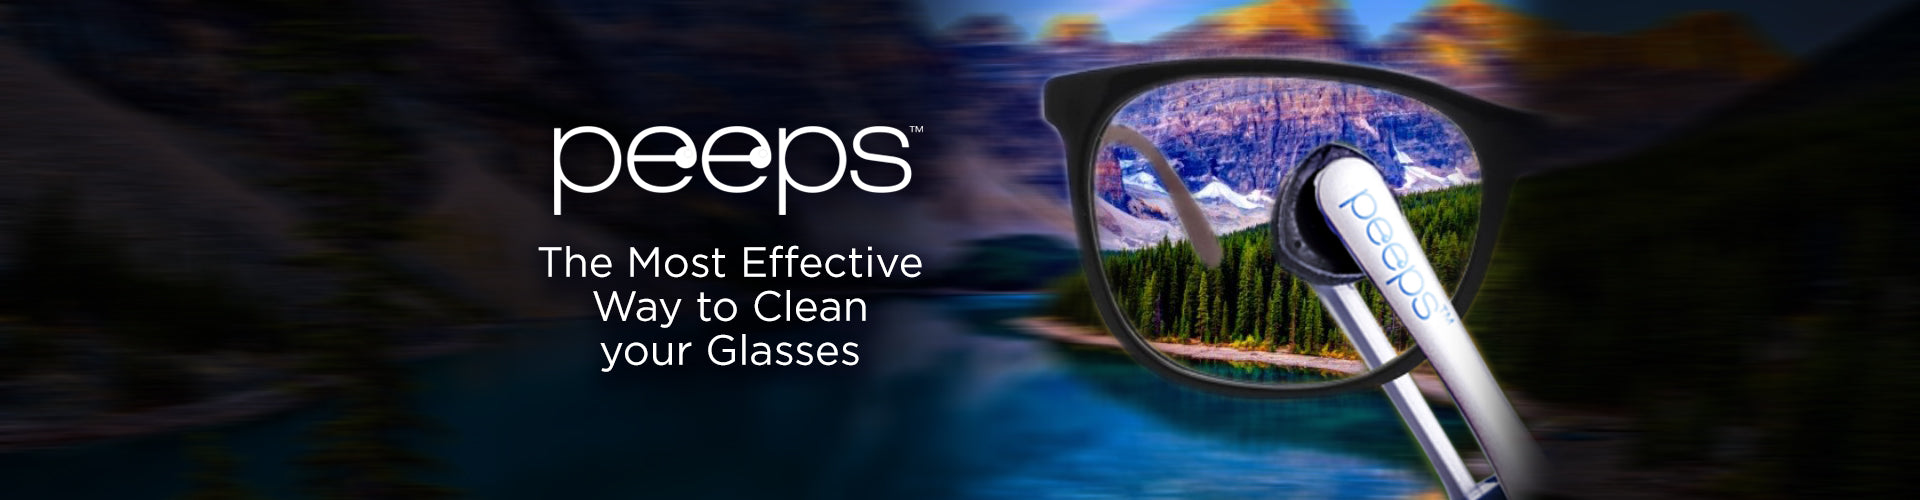 Peeps Eyeglass Cleaner